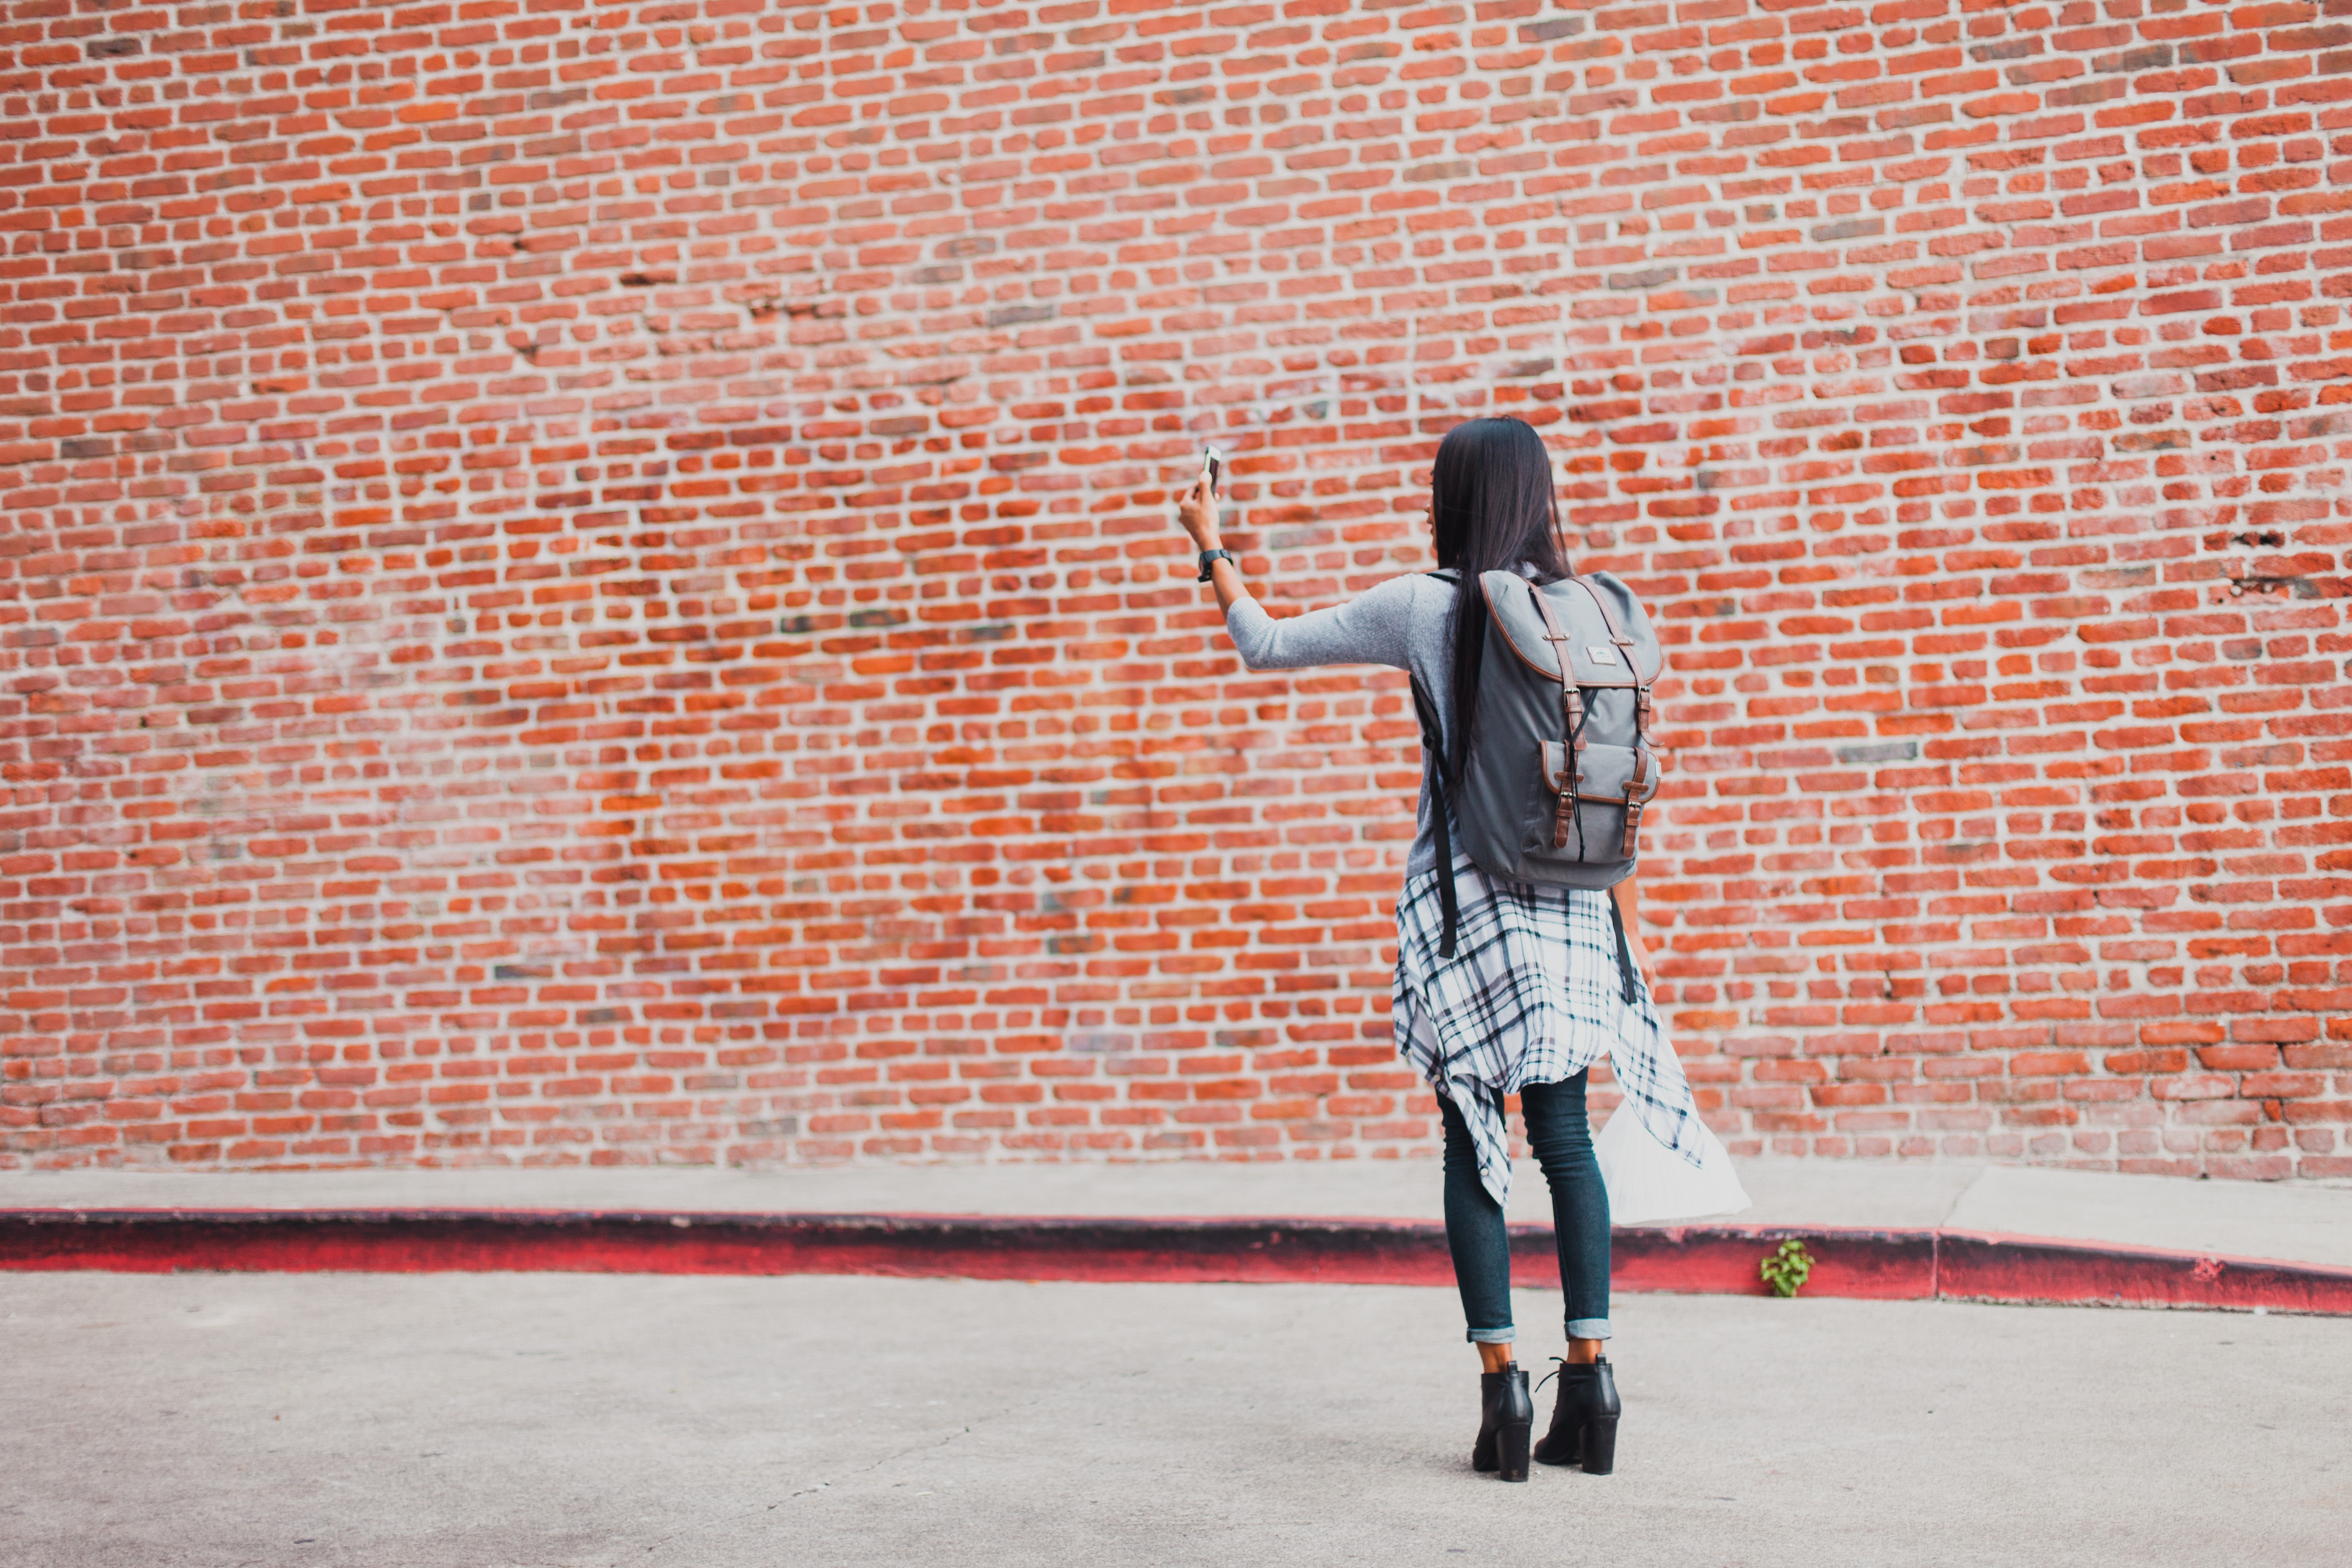 A young woman is taking a photo in front of a brick wall in Downtown.